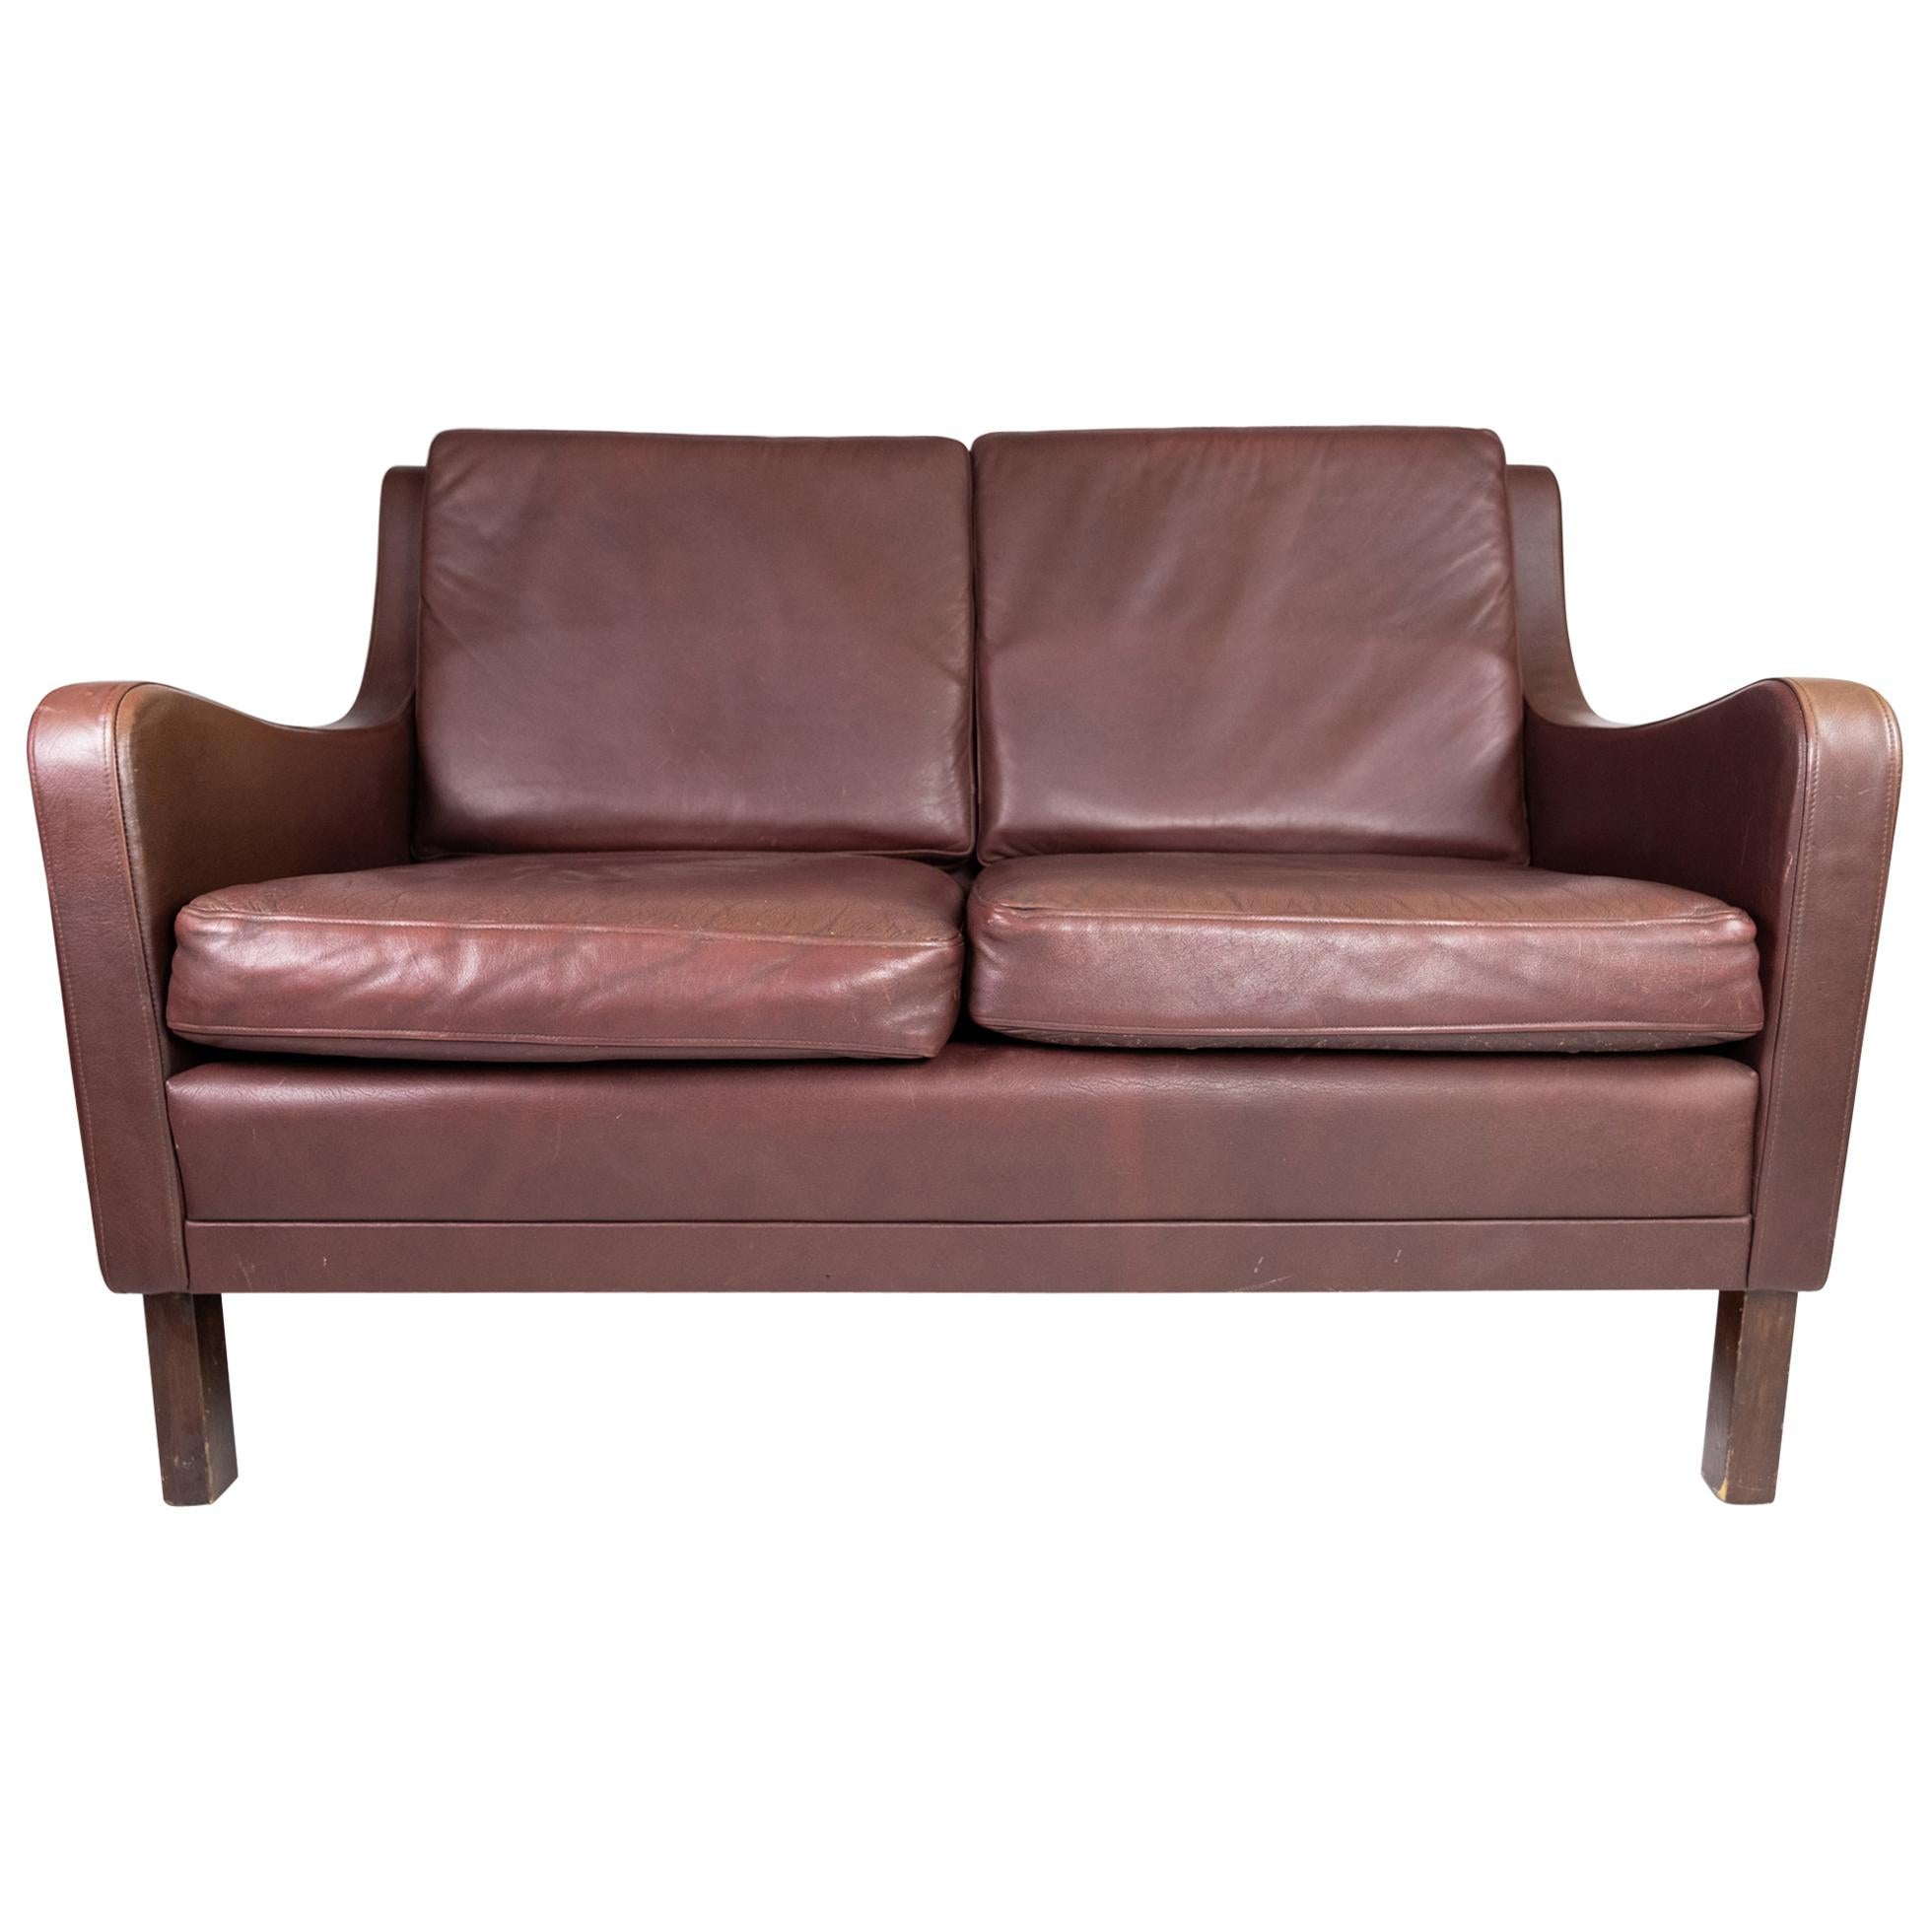 Stouby Couch 4 For Sale On 1stdibs